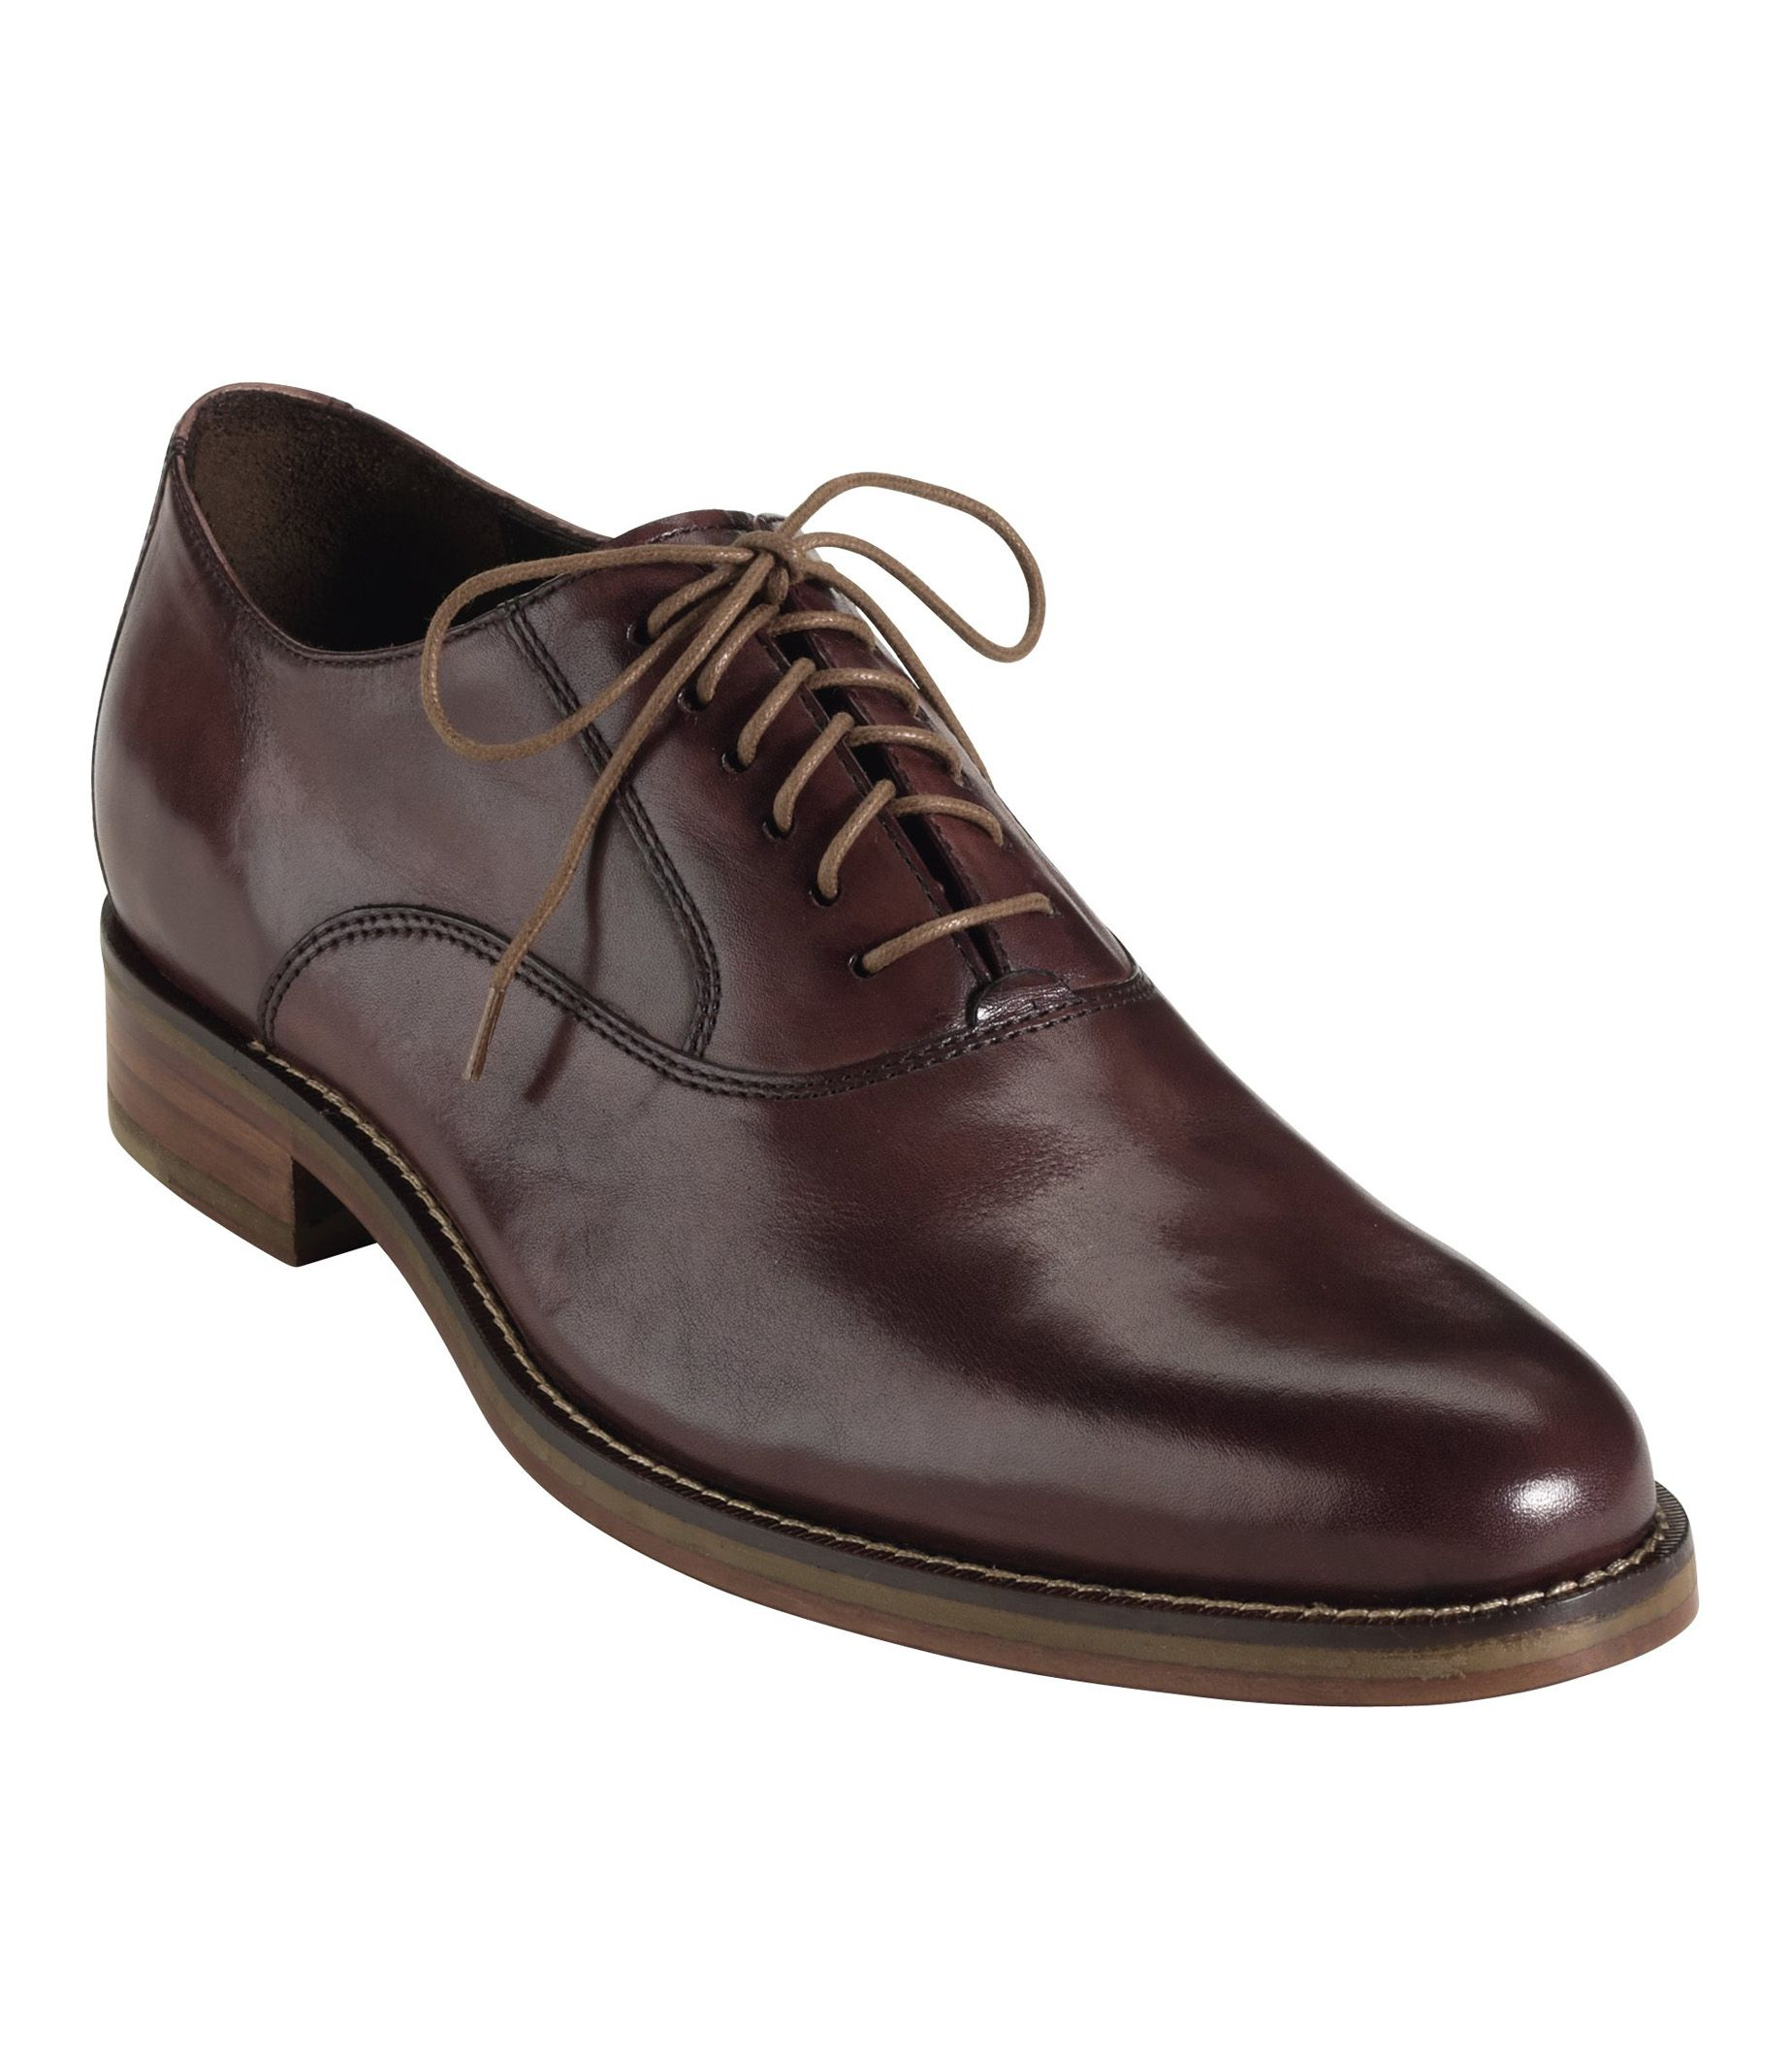 Air Madison Plain Toe Oxford Shoe by Cole Haan